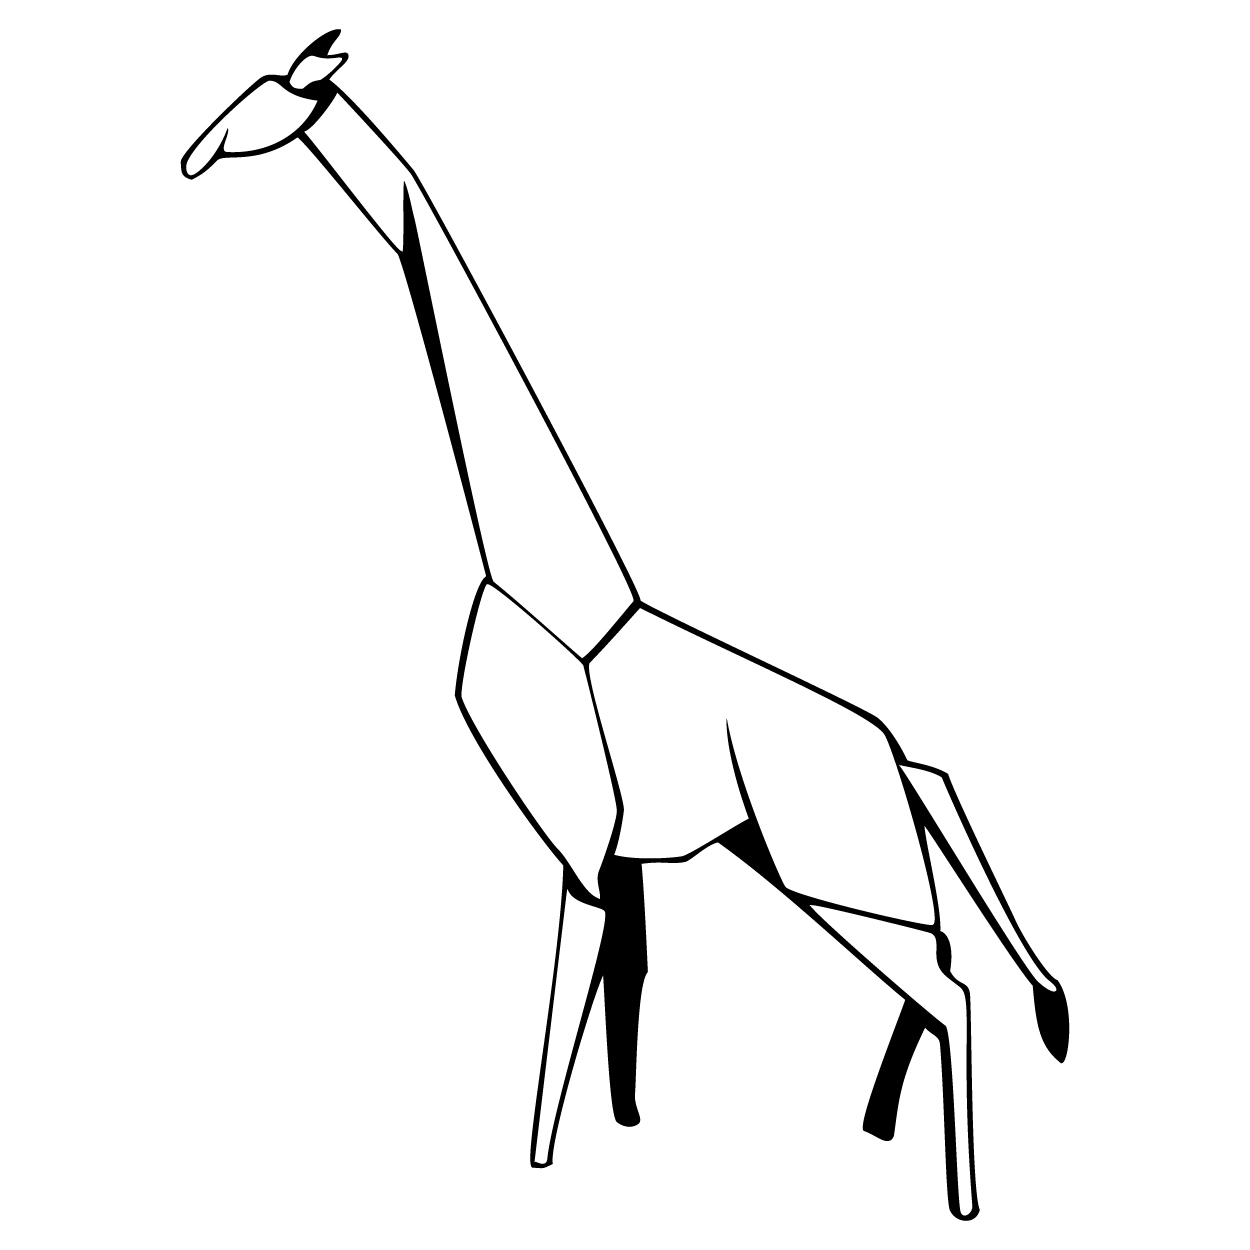 how do you draw a giraffe step by step giraffe drawing cute free download on clipartmag step by step a draw do how you giraffe